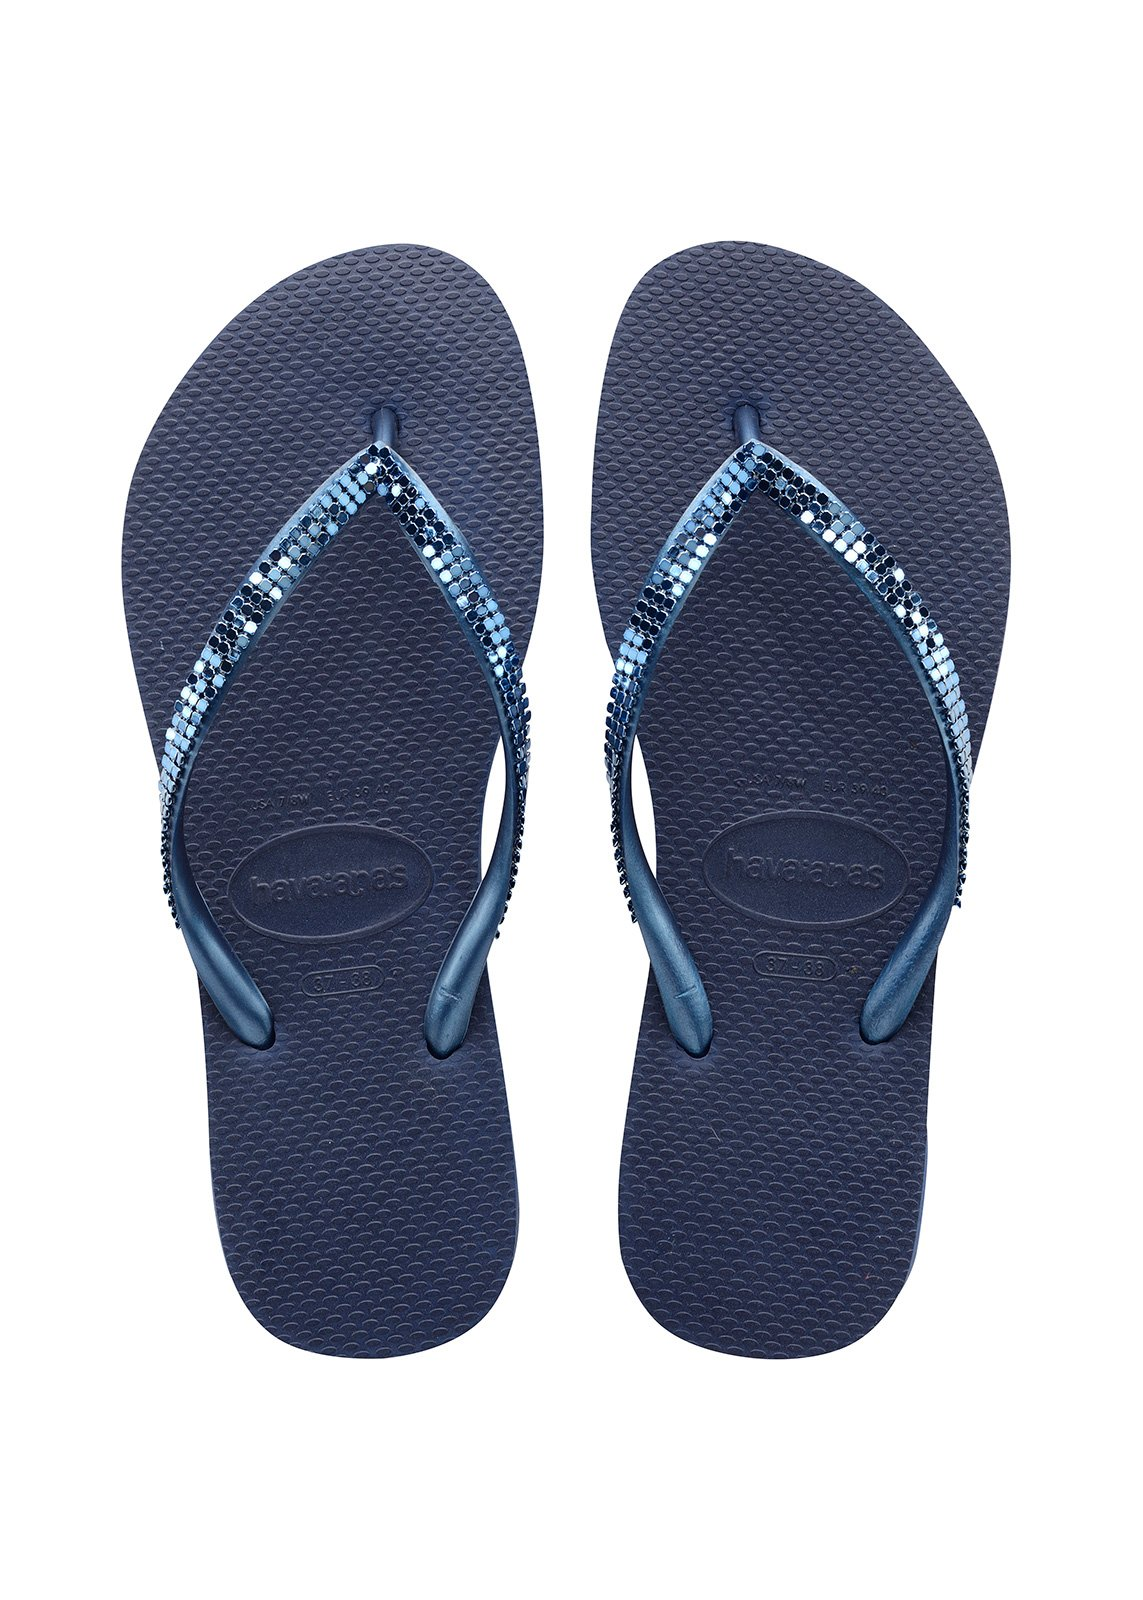 Free shipping on women's flip-flop sandals at membhobbdownload-zy.ga Shop a variety of flip-flops and thong sandals from the best brands including Birkenstock, Tory Burch, Steve Madden and more. Totally free shipping & returns.